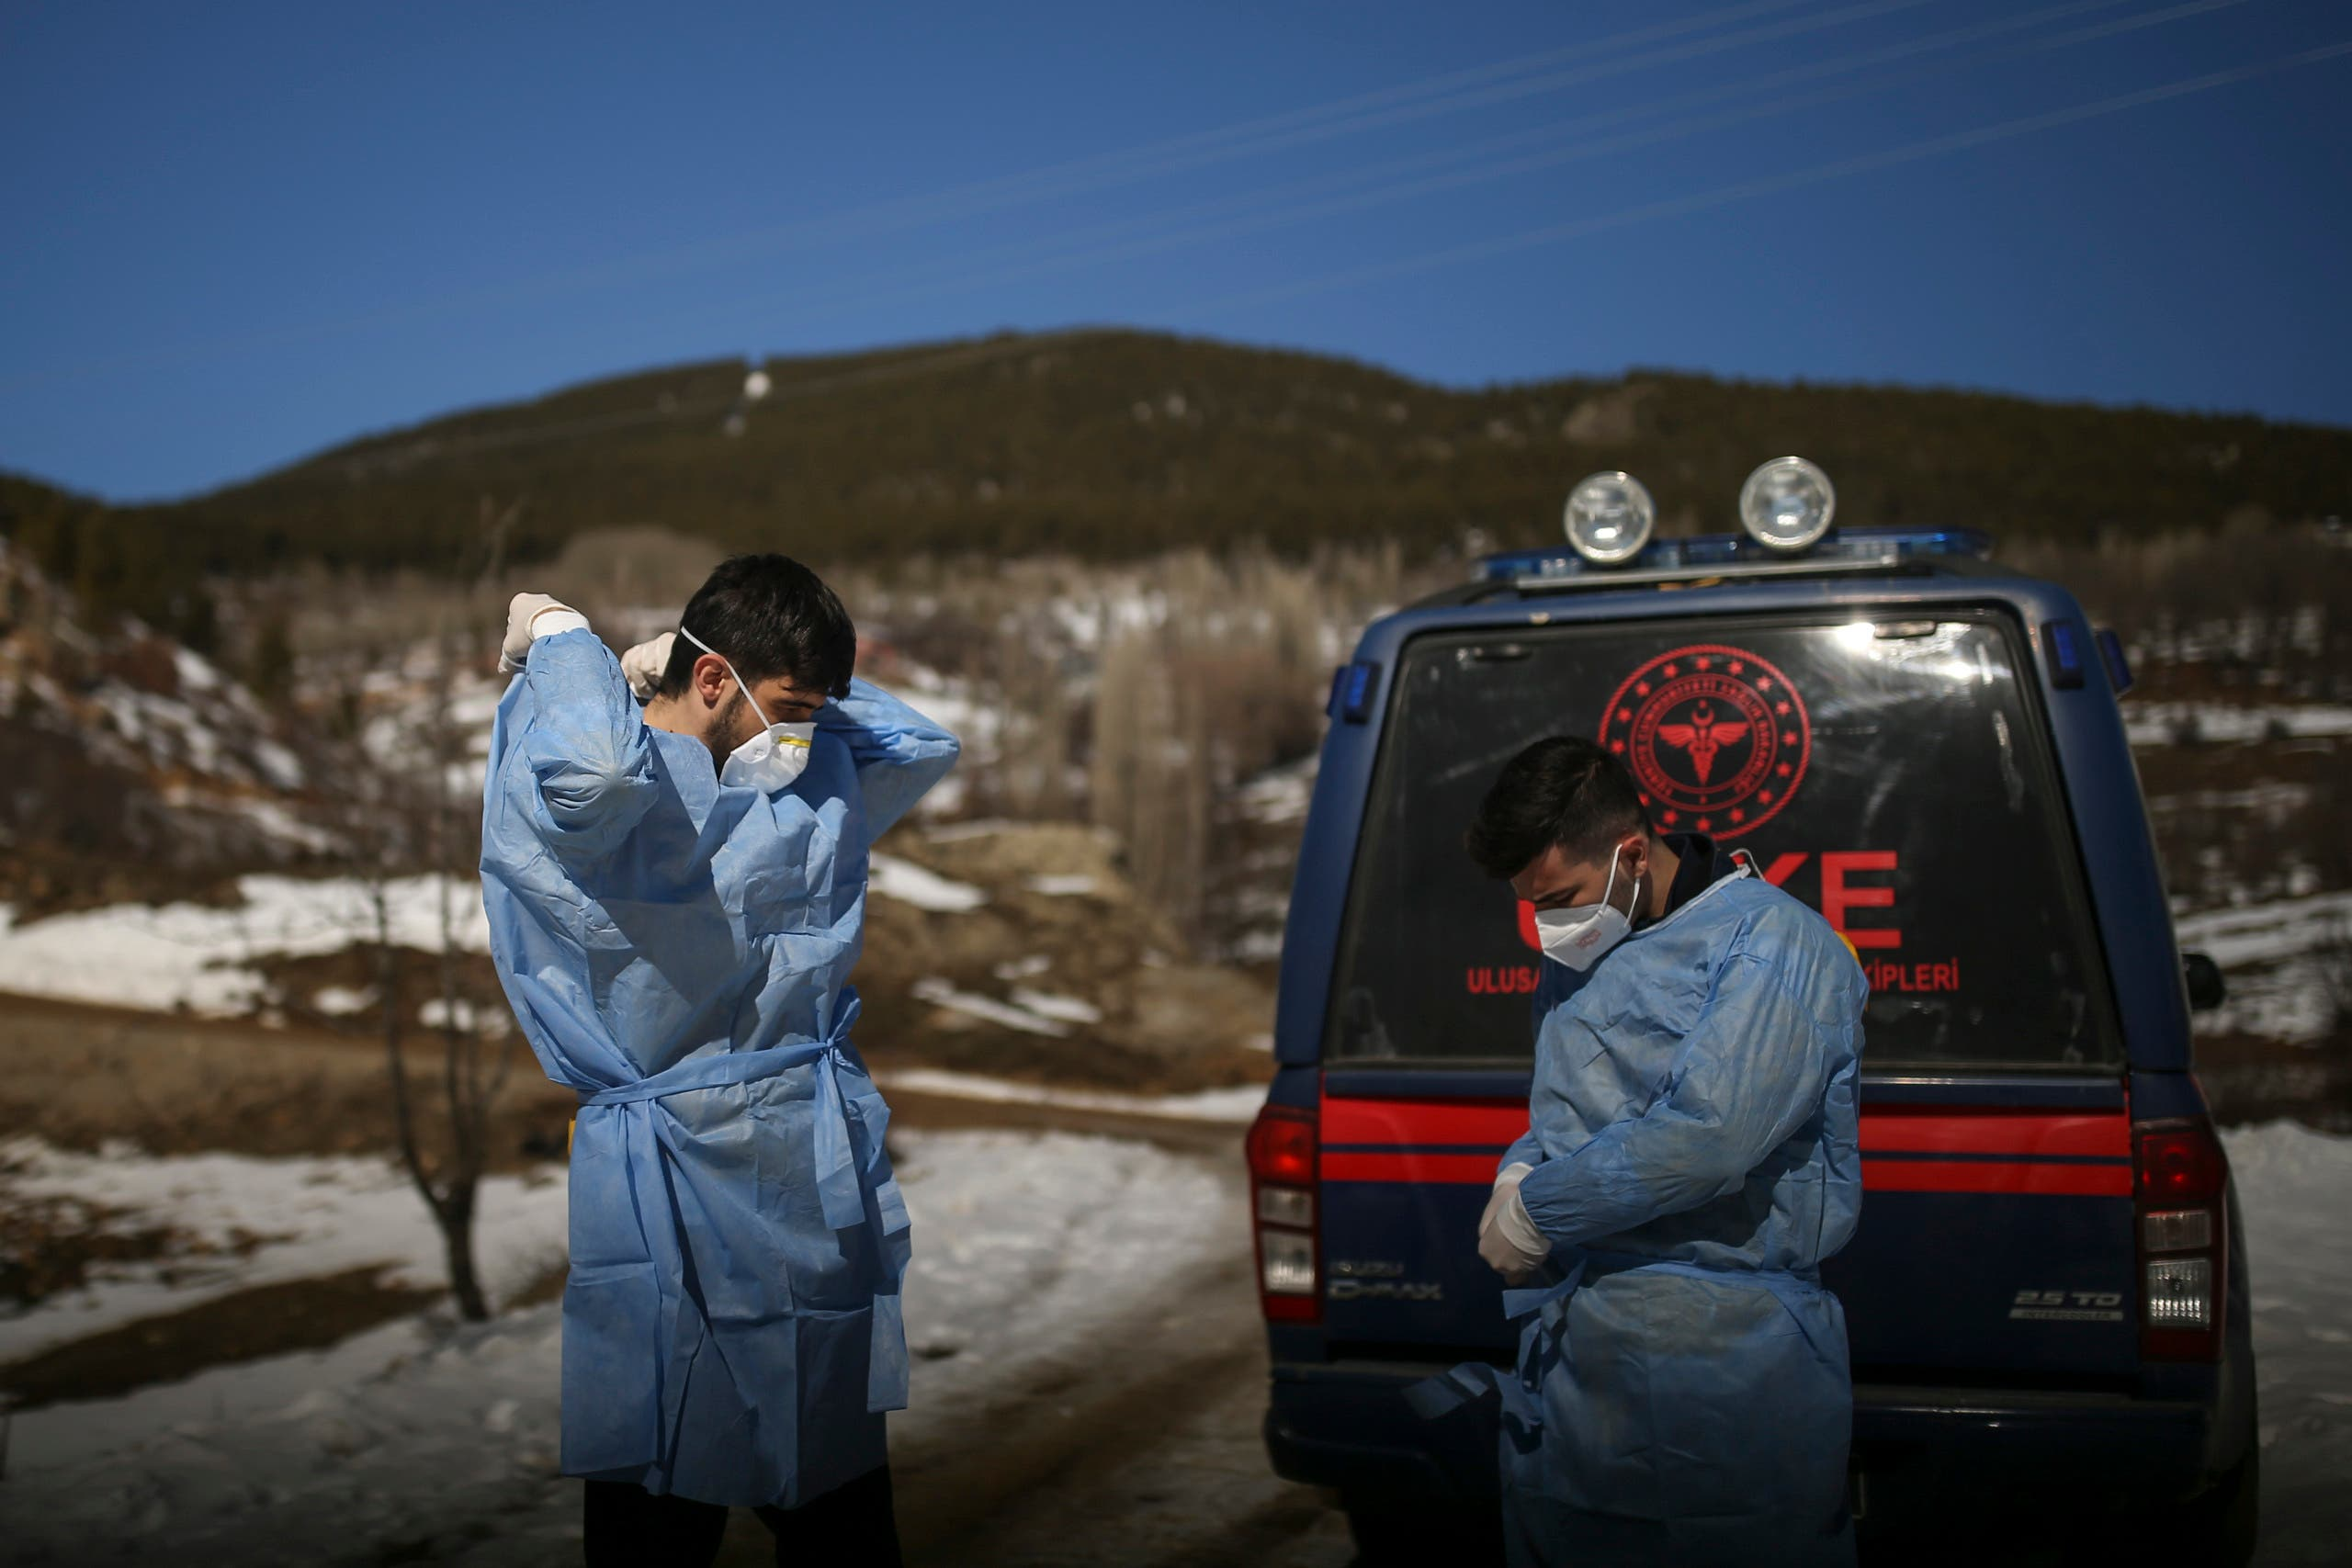 Dr. Yasin Kaya, left and health worker Yusuf Duran, right, members of the the Koyulhisar Public Health Center vaccination team, prepare to vaccinate 85-year-old Ibrahim Yigit in the isolated village of Gumuslu in the district of Sivas, central Turkey, Friday, Feb. 26, 2021. (AP)